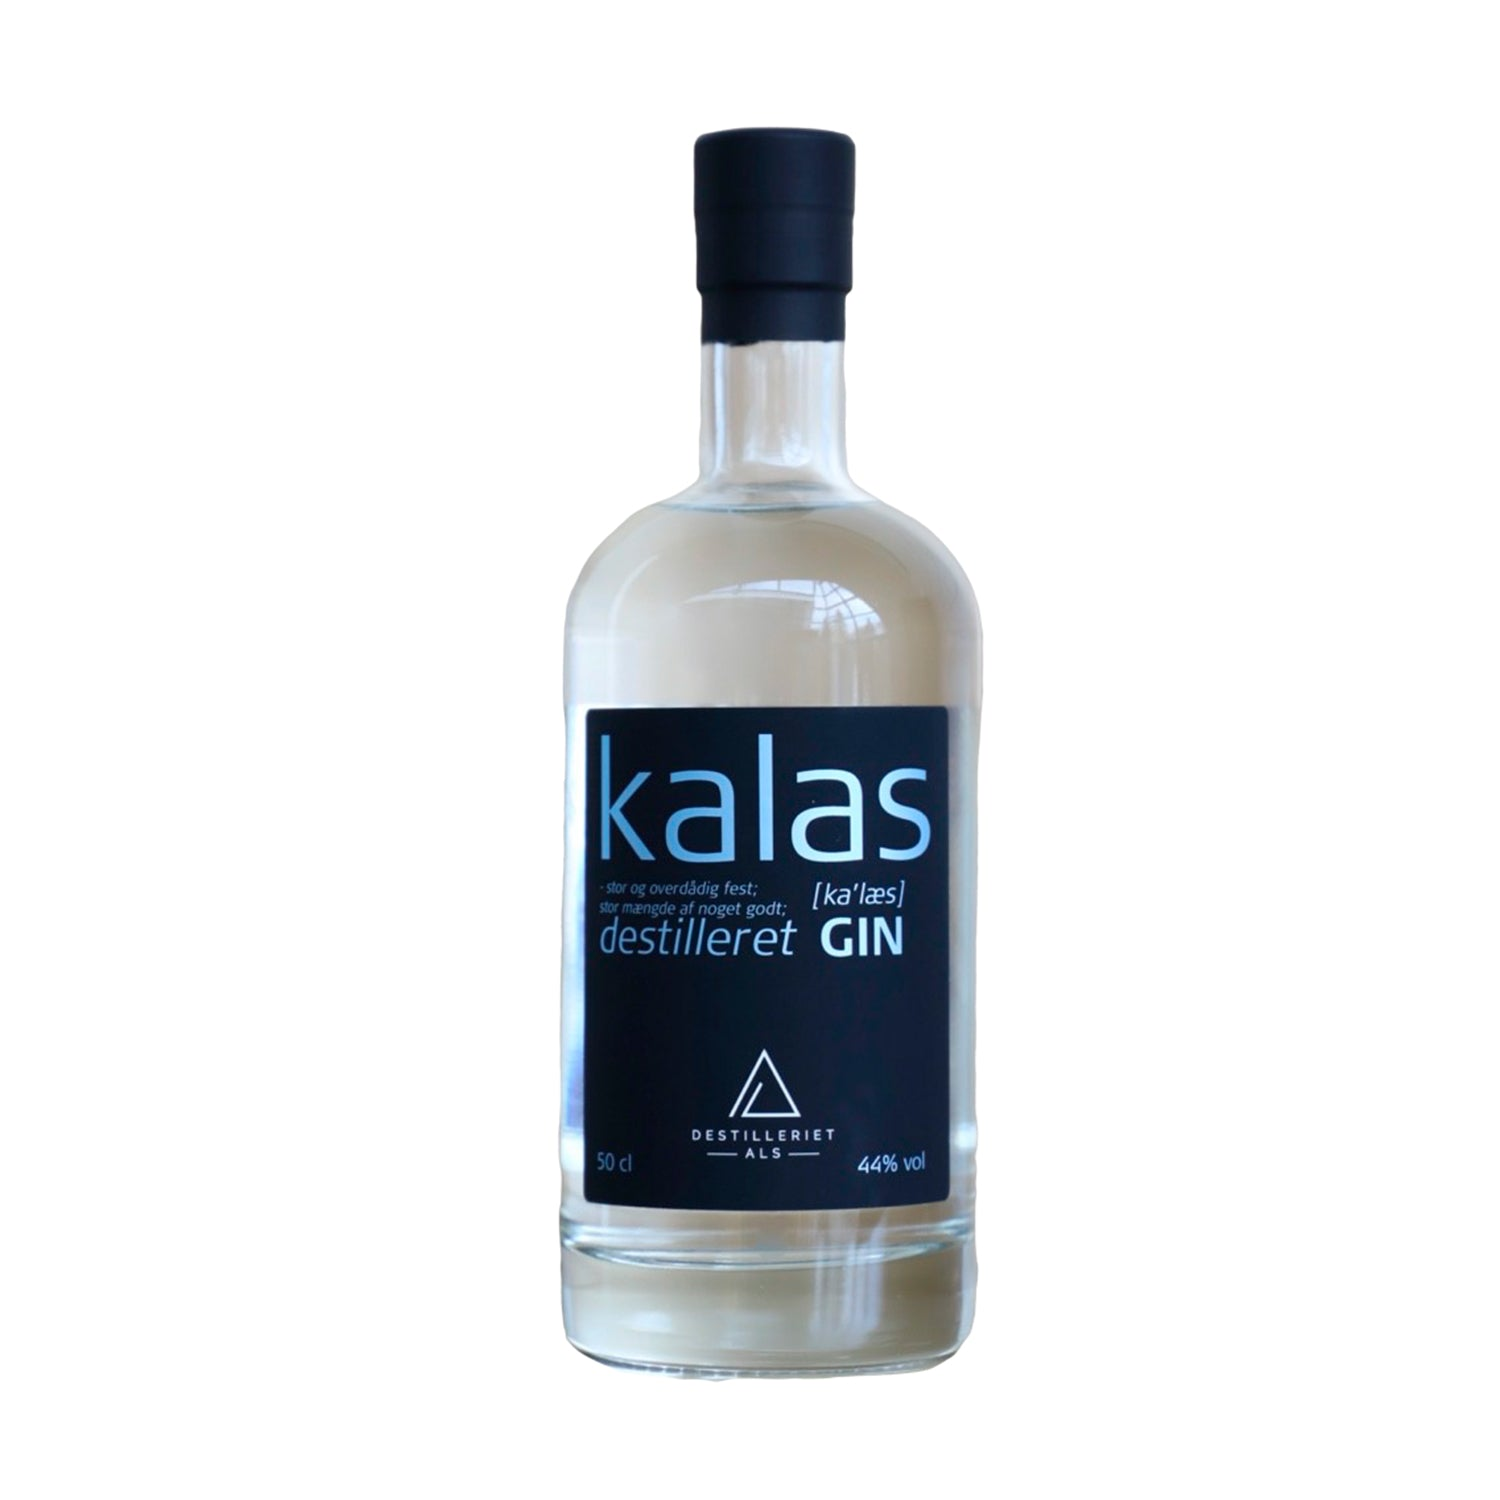 Kalas Destilleret Gin, 500ml 44%